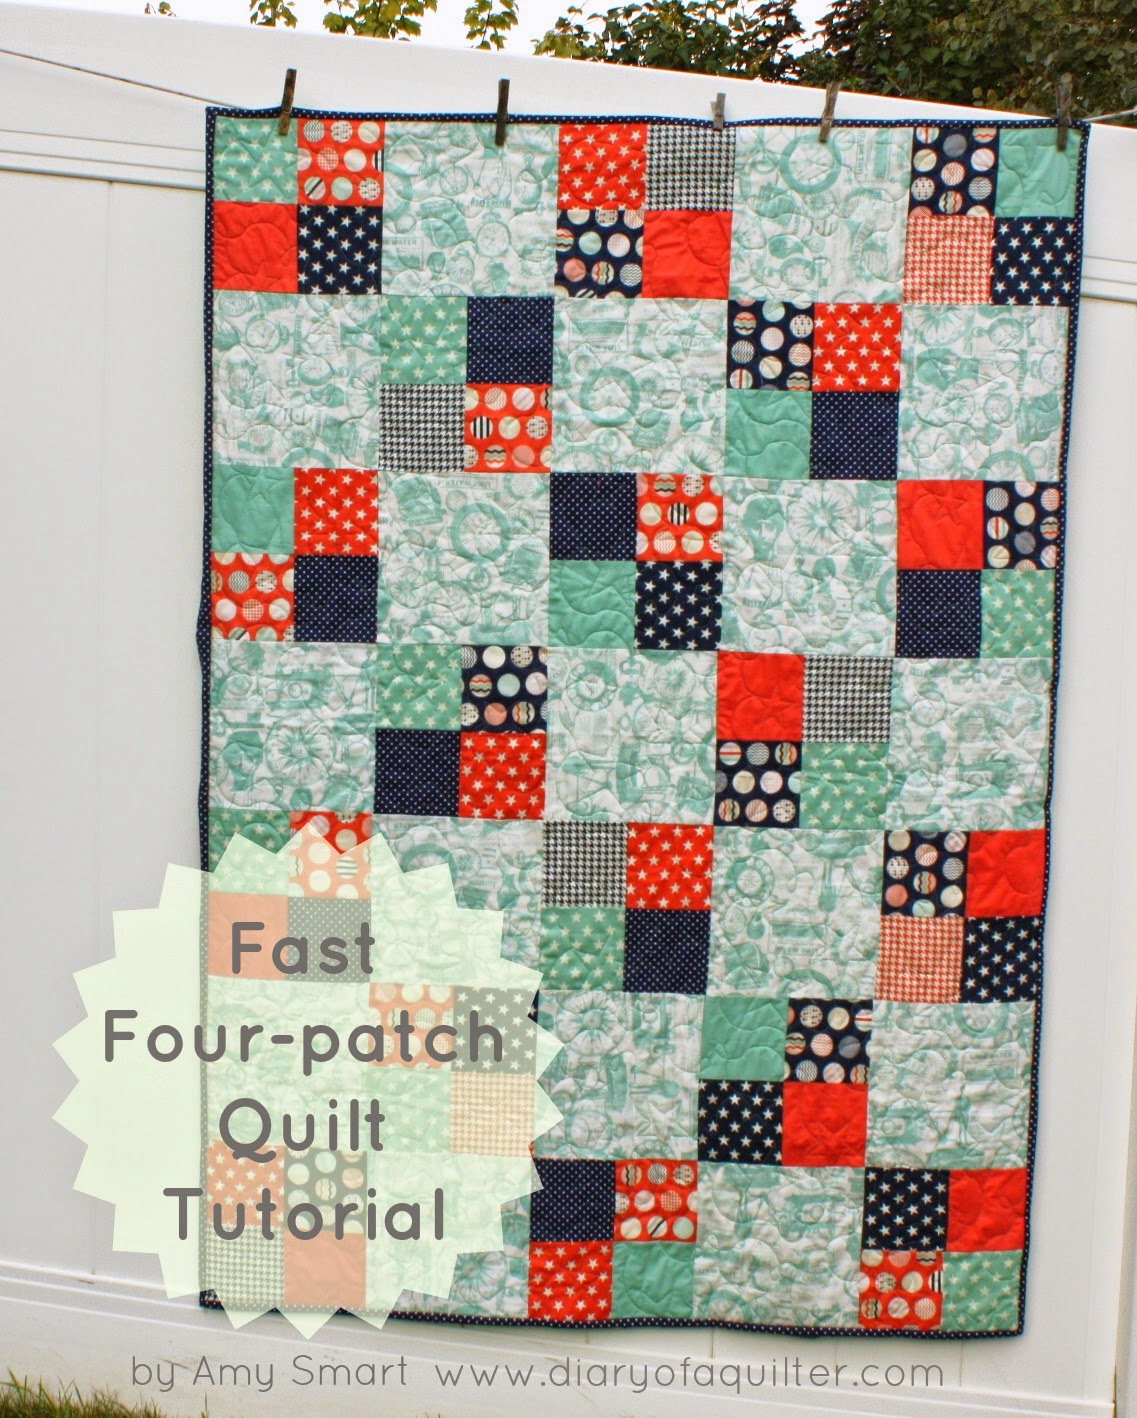 """Fast Four Patch Quilt Tutorial"" Free Easy to Sew Quilt Pattern designed by Amy Smart from Diary of a Quilter"